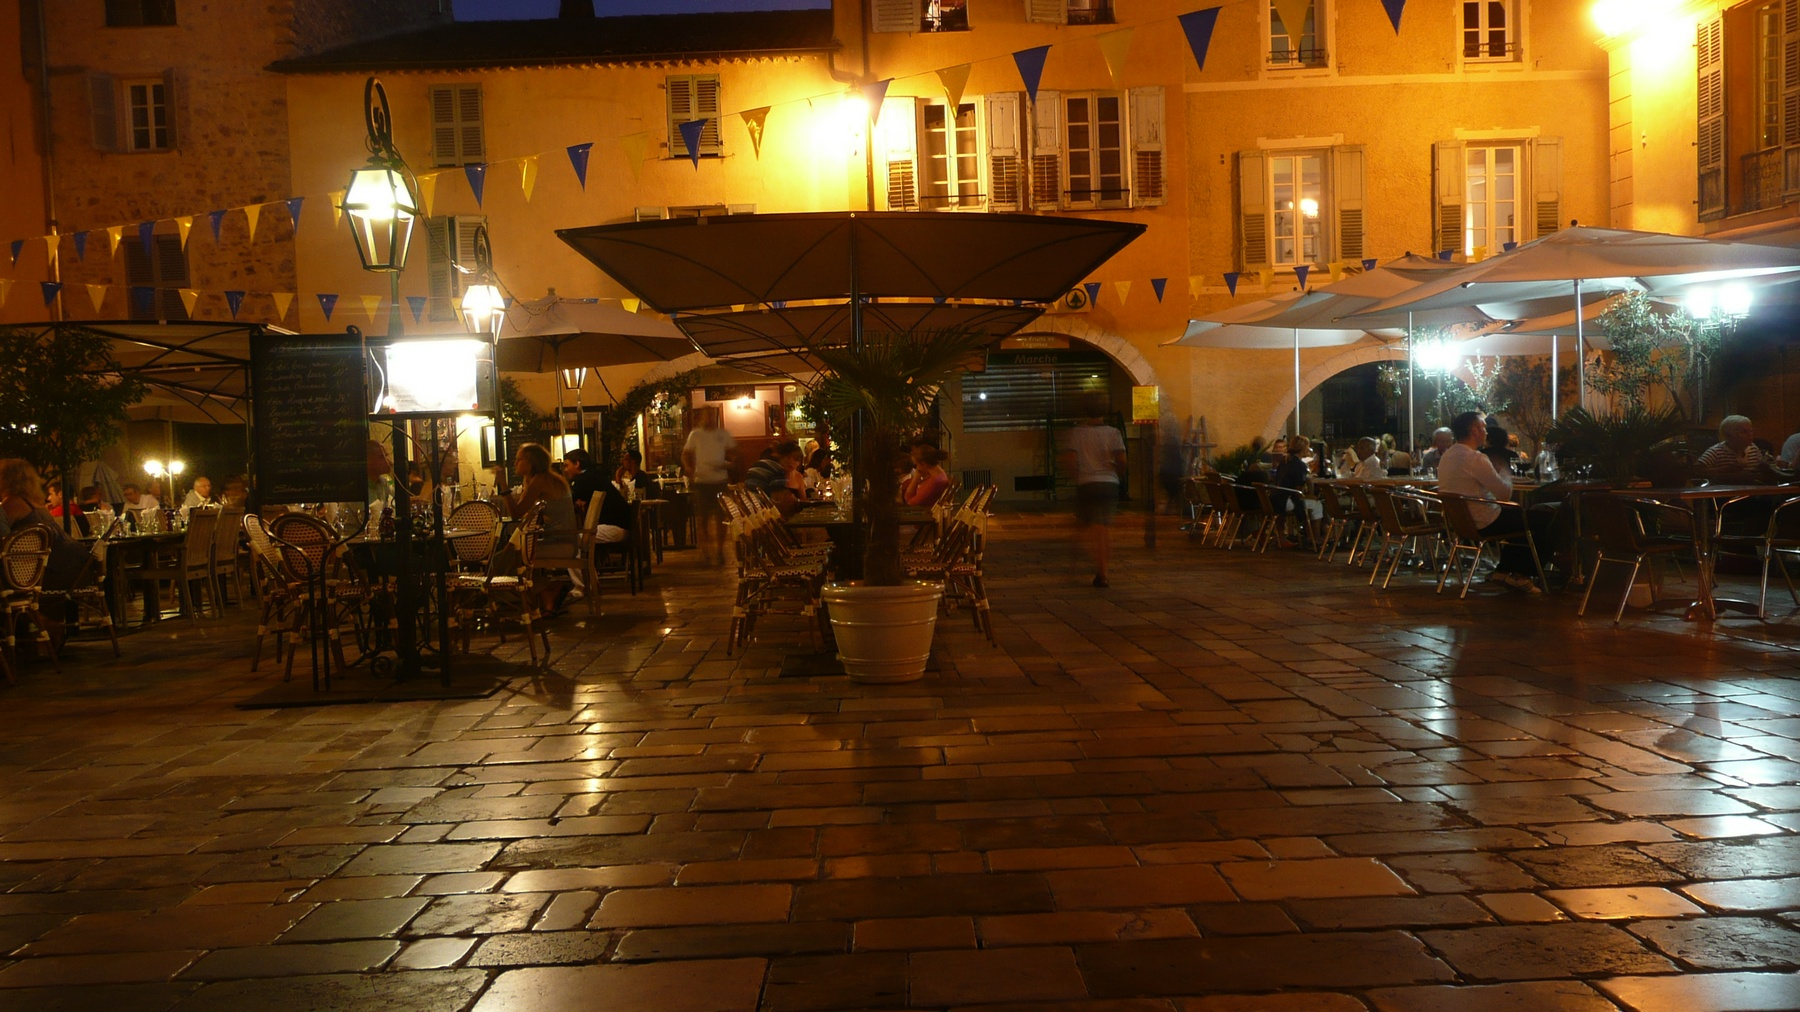 Valbonne Centrum - plein met restaurants